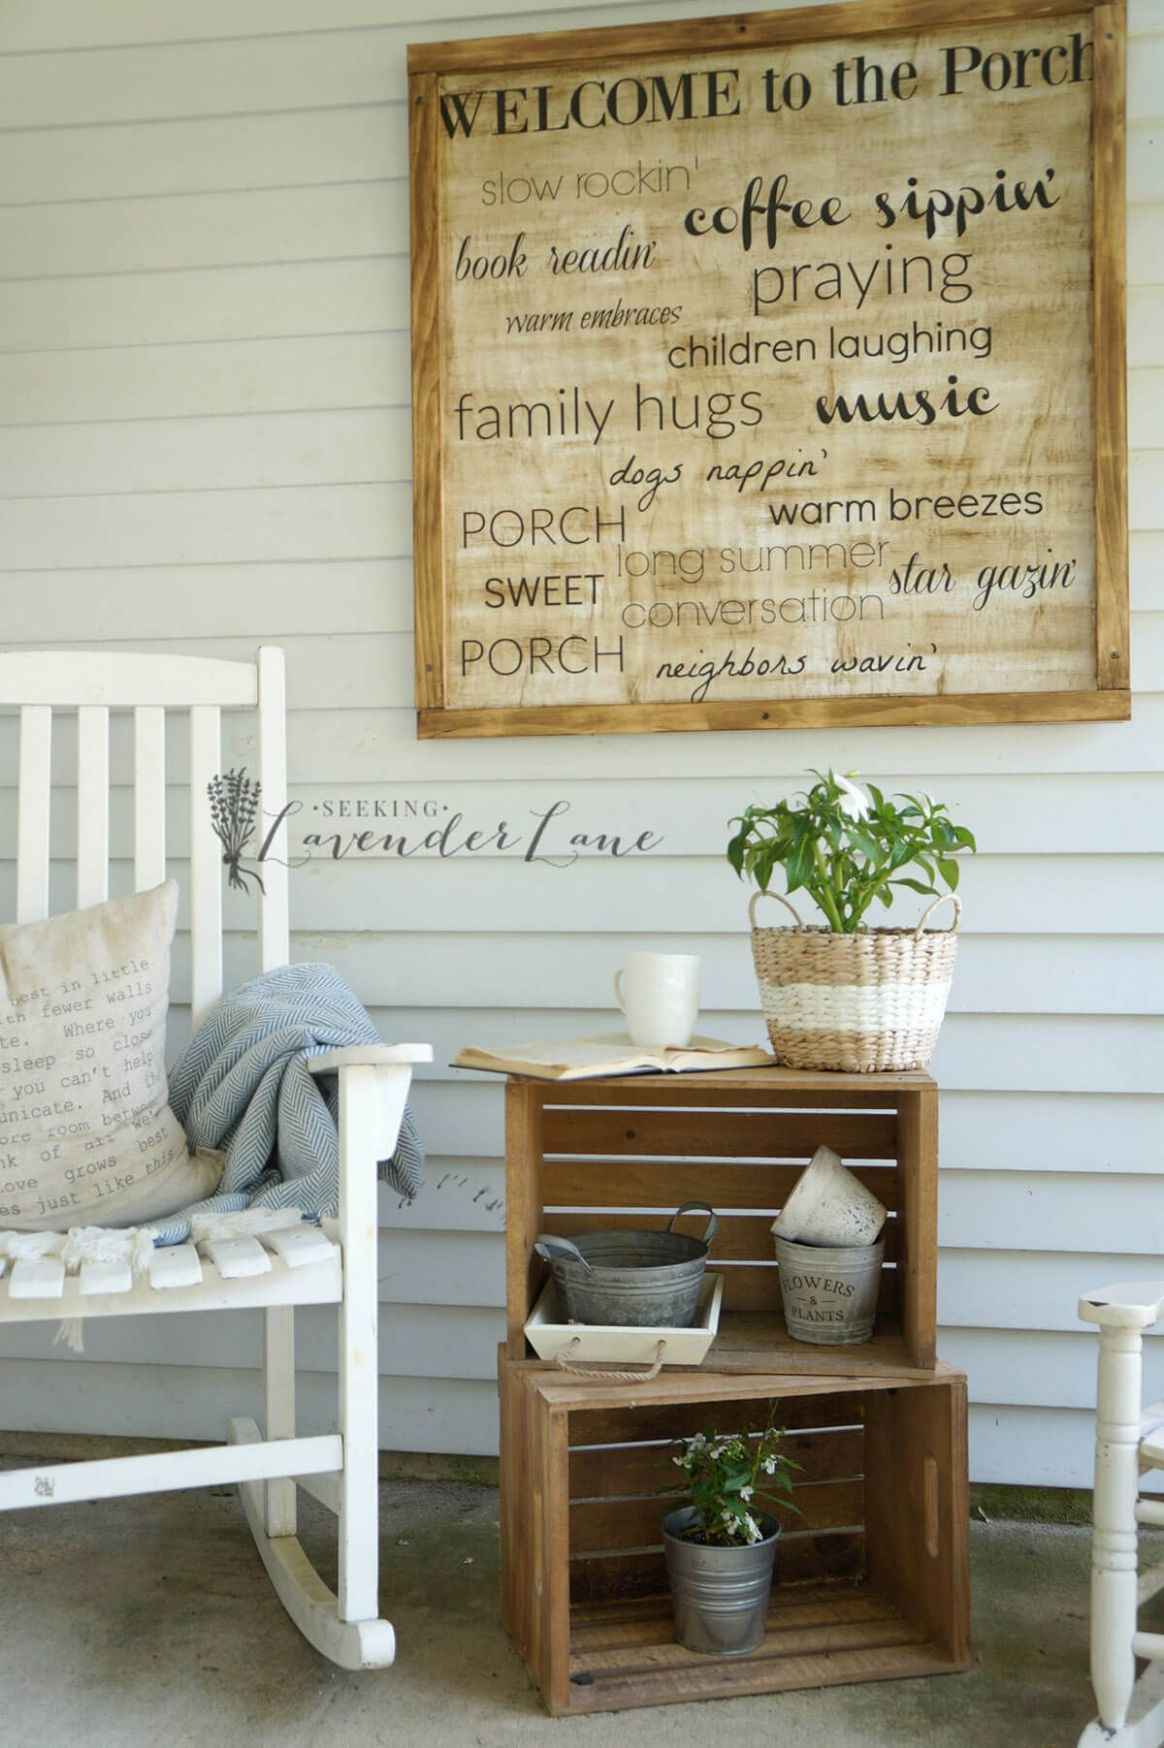 12 Beautiful Porch Wall Decor Ideas to Make Your Outdoor Area More ...